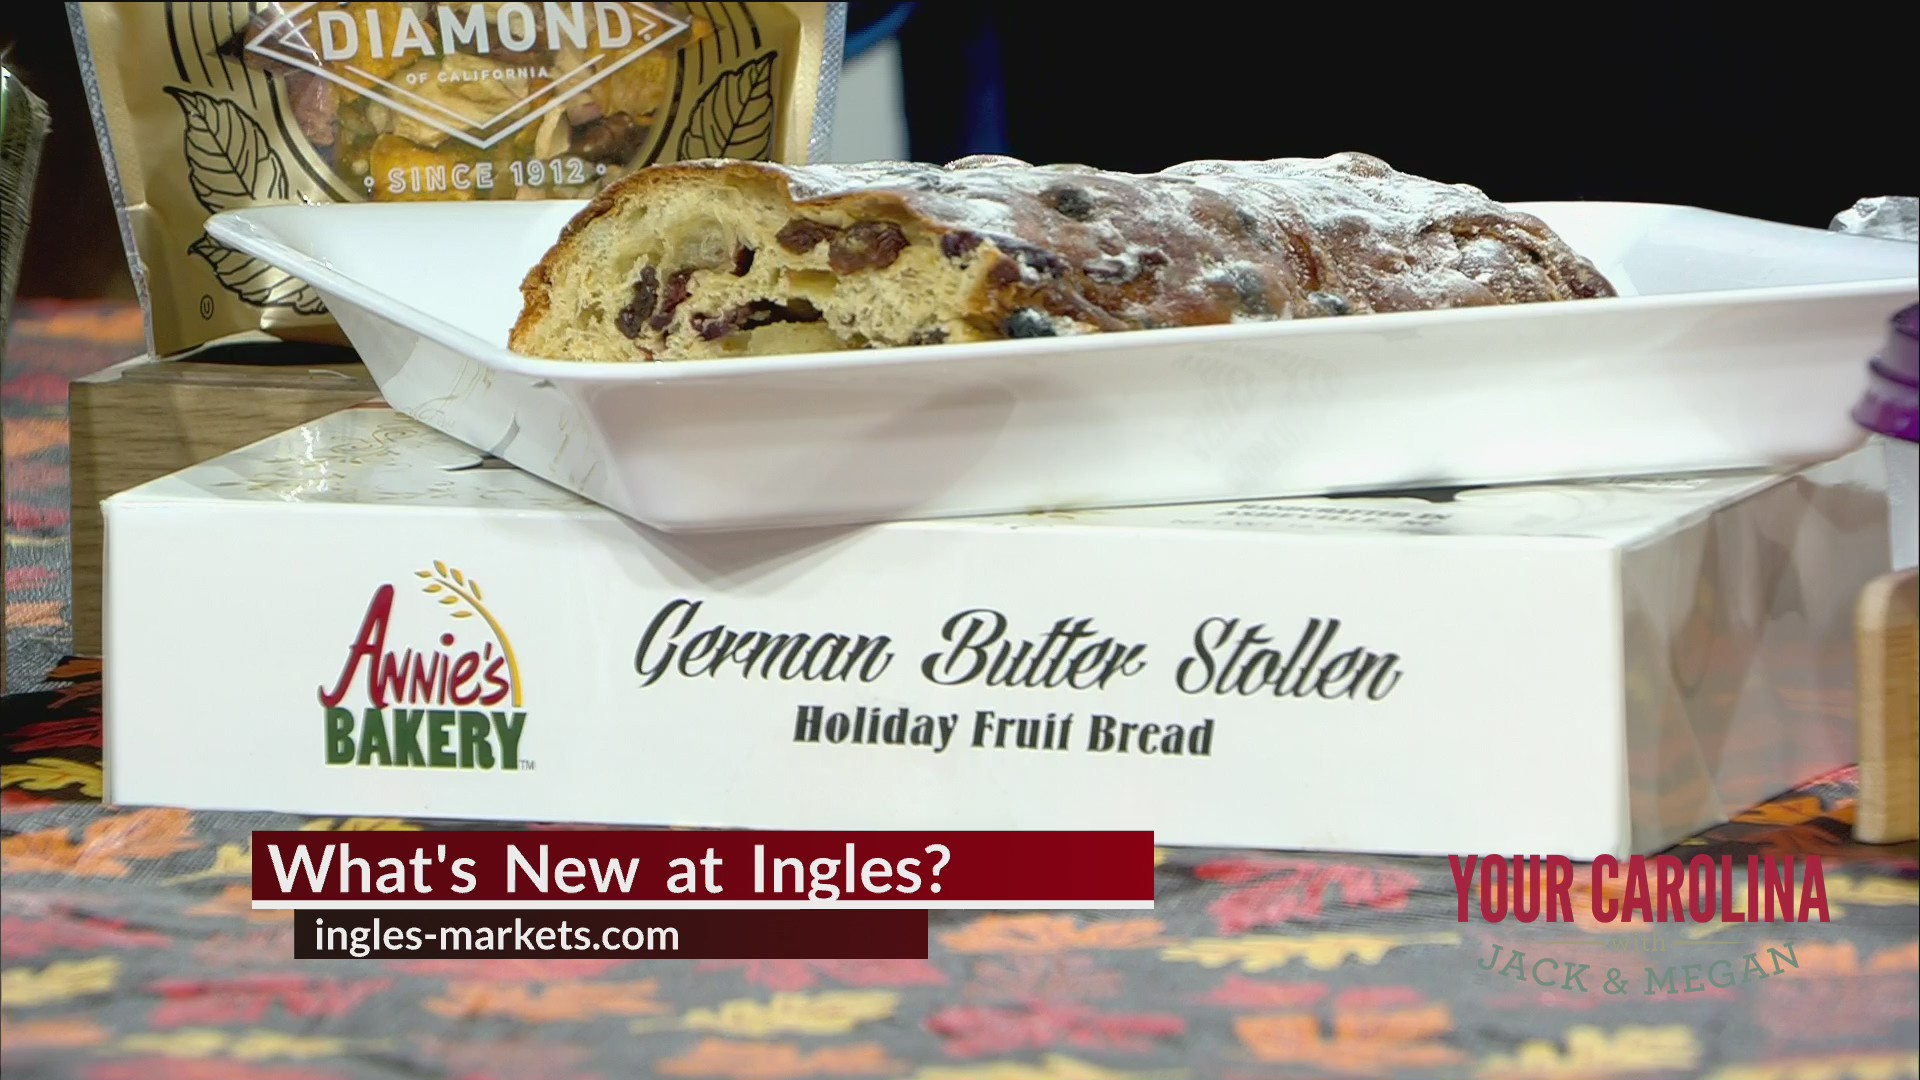 Food For Thought - What's New at Ingles?